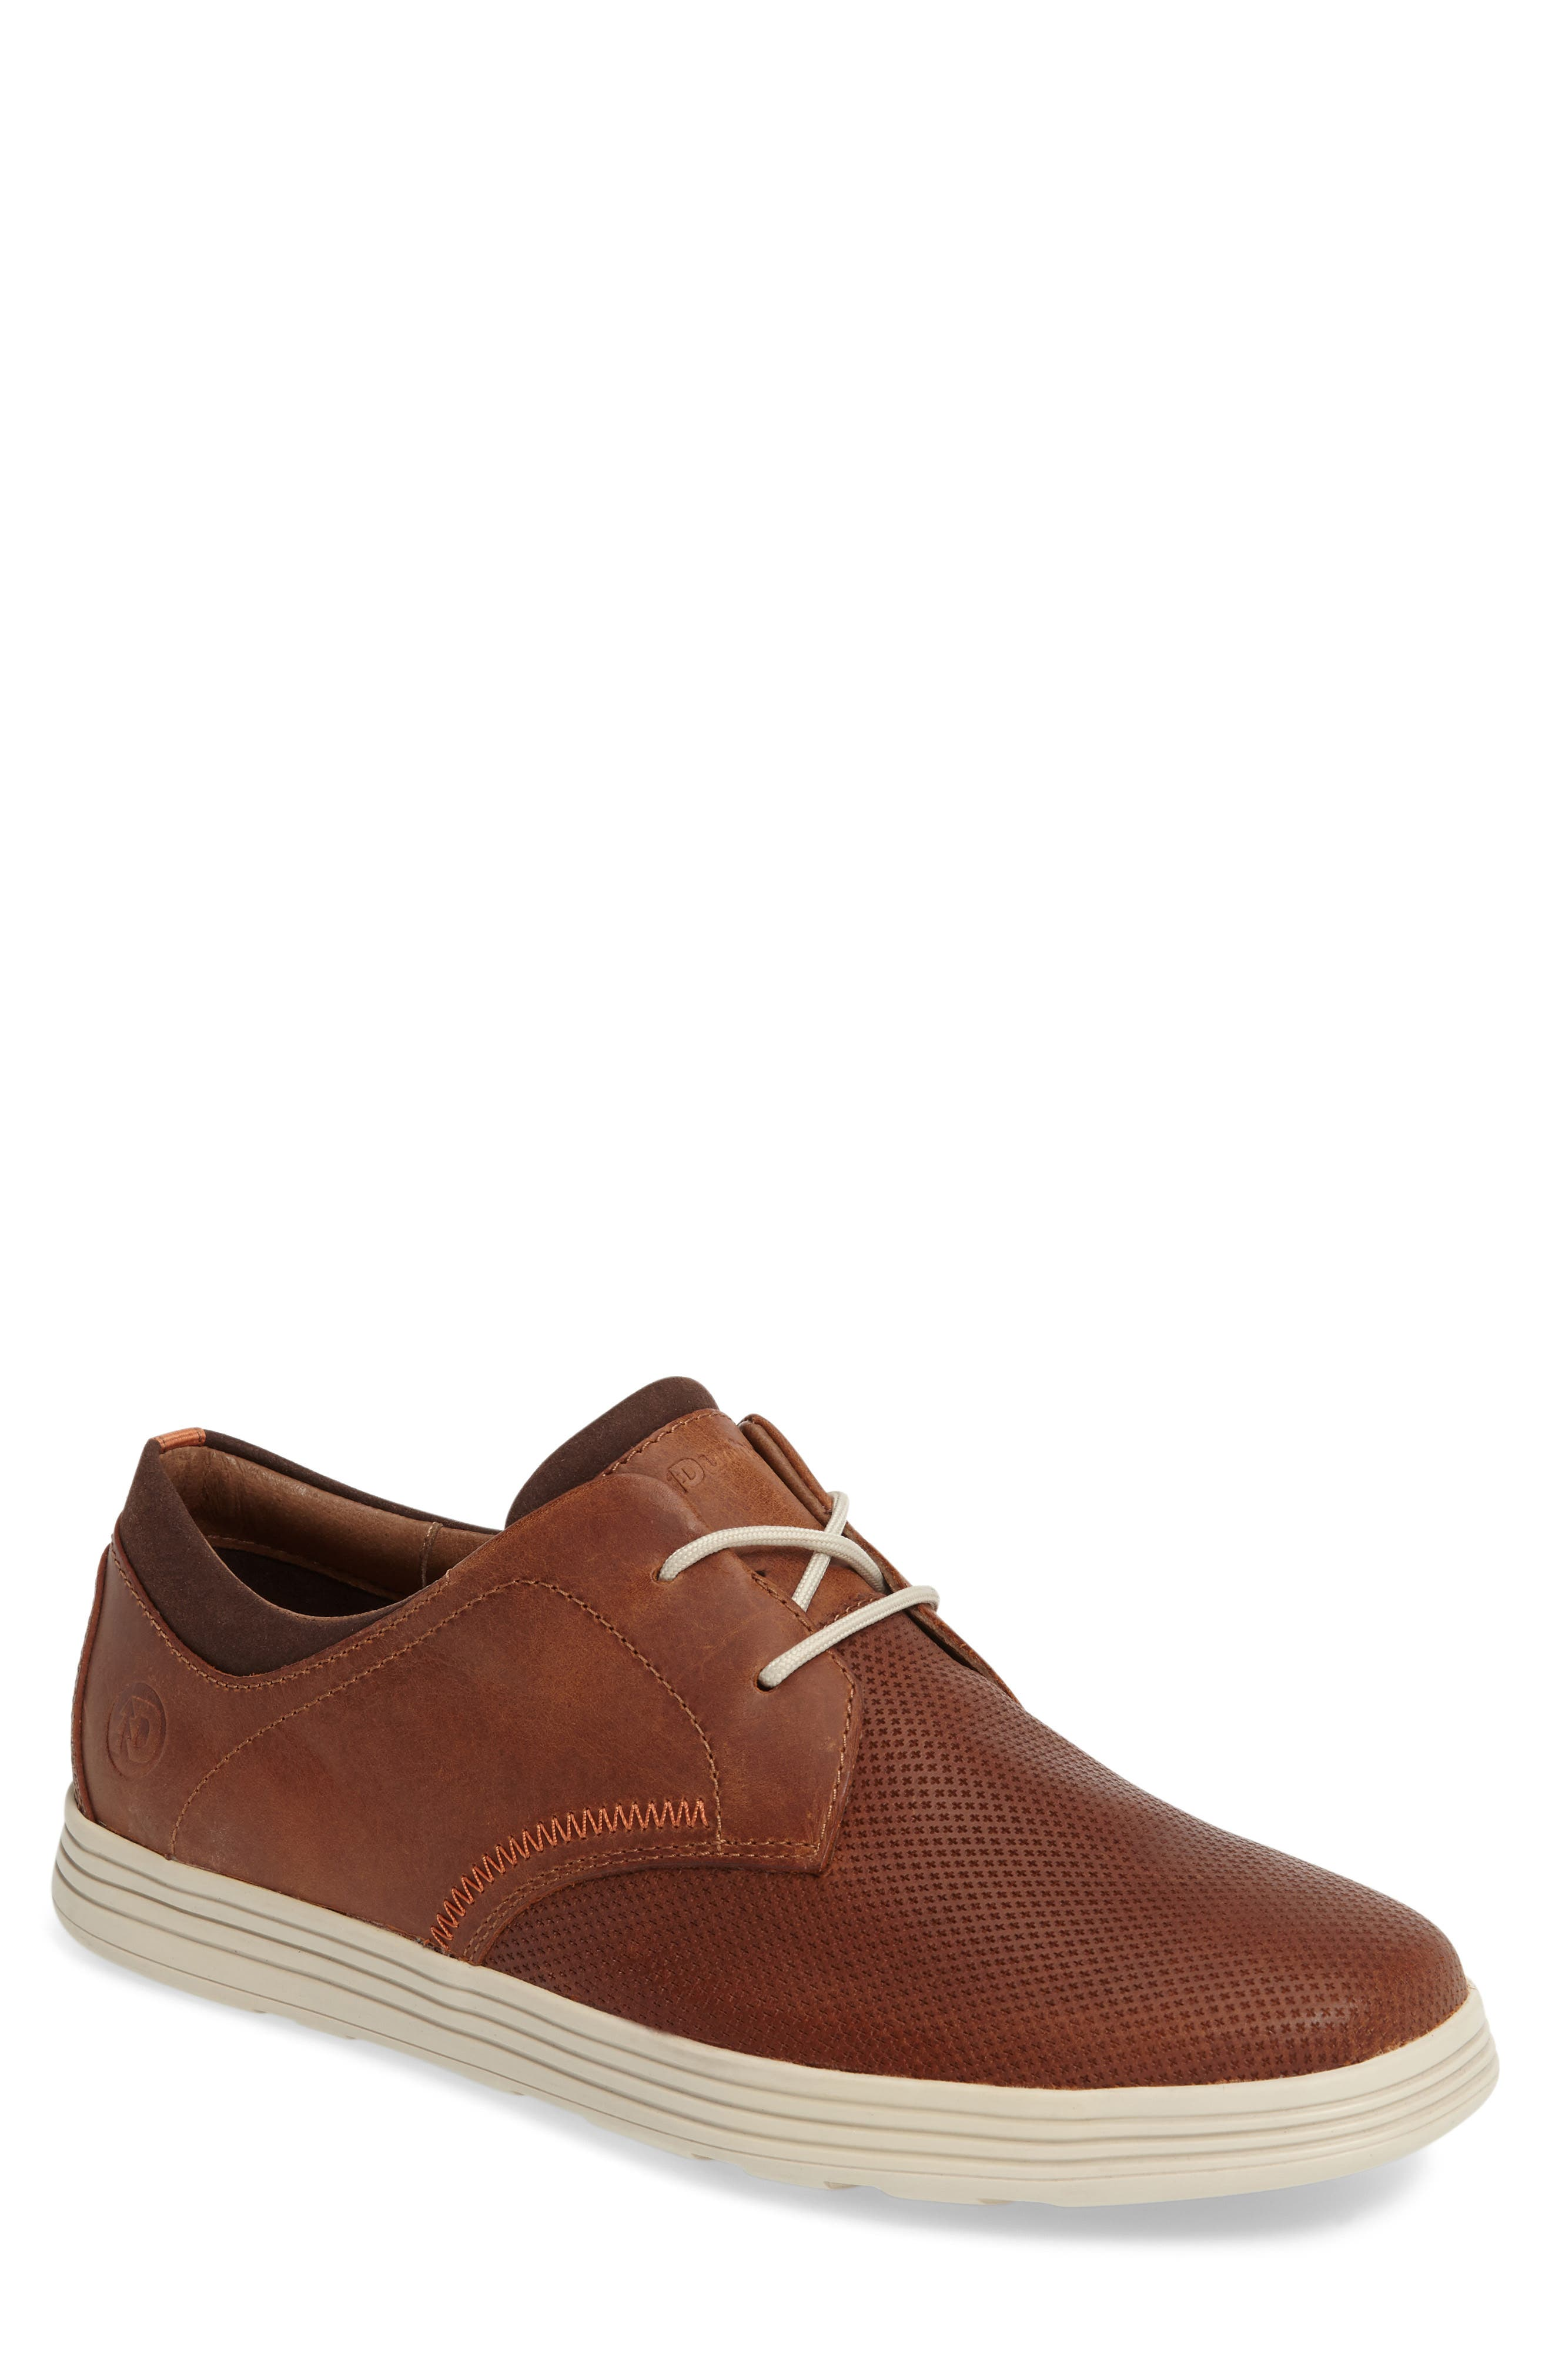 Colchester Embossed Oxford,                         Main,                         color, BROWN